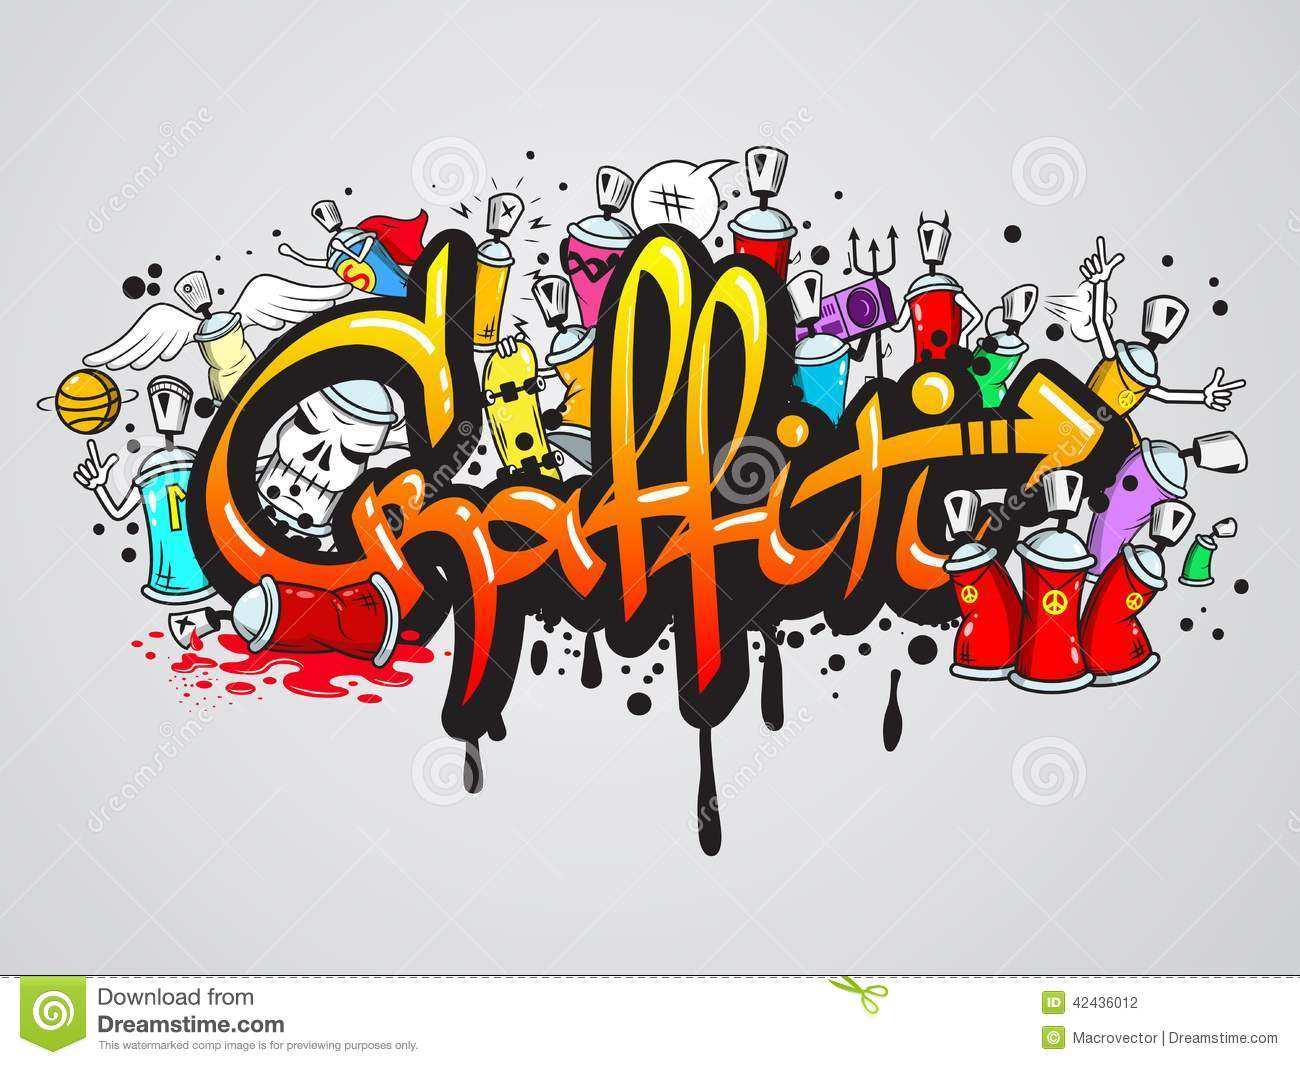 Decorative graffiti art spray paint letters and characters composition ...